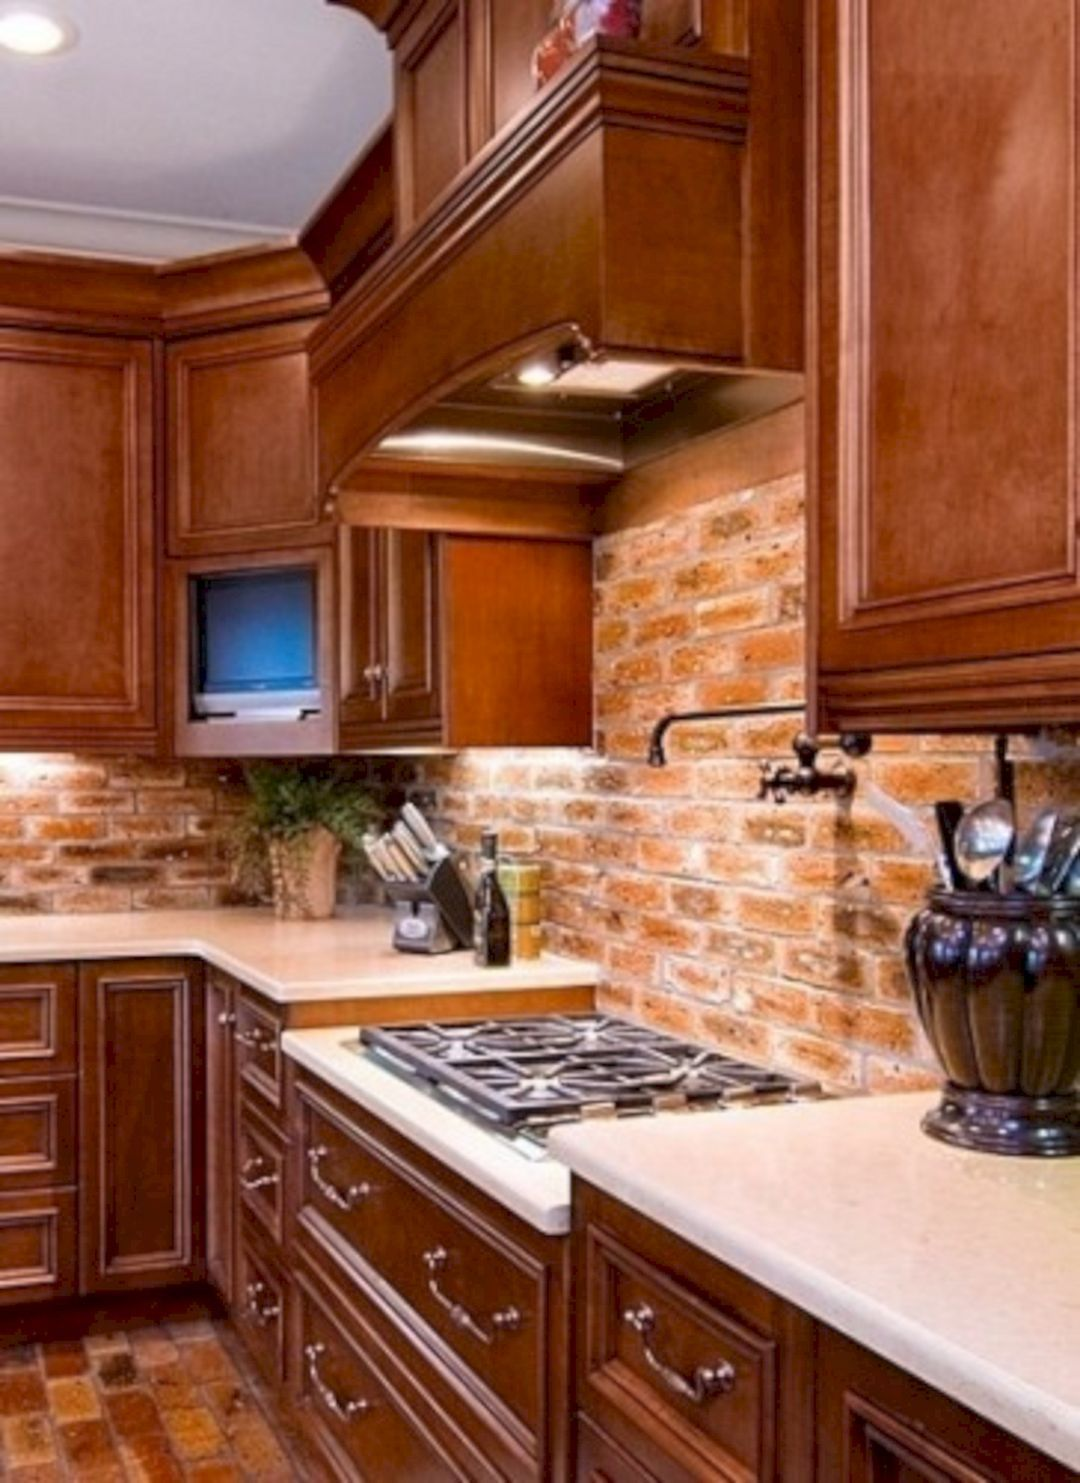 Red Brick Kitchen Ideas 013 - Brick kitchen, Brick backsplash kitchen, Brick backsplash, Backsplash with dark cabinets, Backsplash kitchen dark cabinets, Kitchen renovation - Red Brick Kitchen Ideas 013